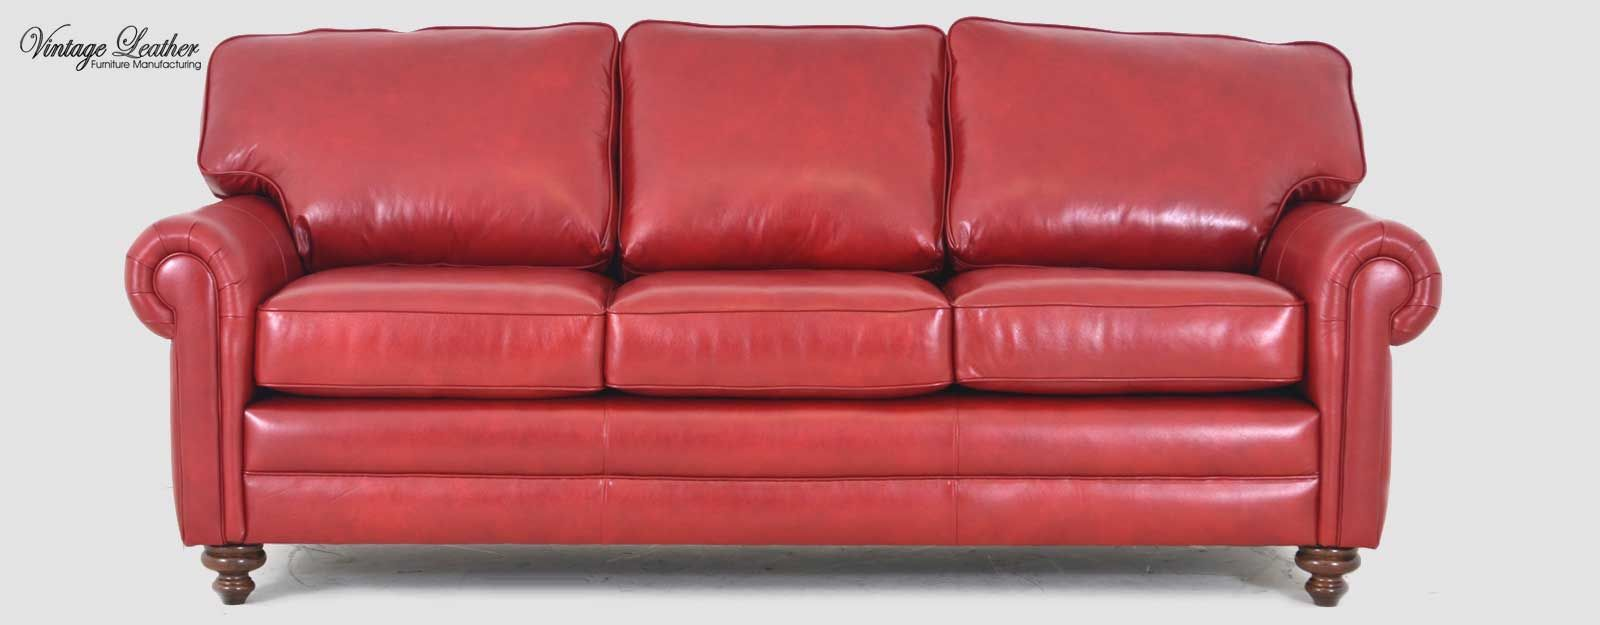 Red Leather Arabella Sofa By Vintage